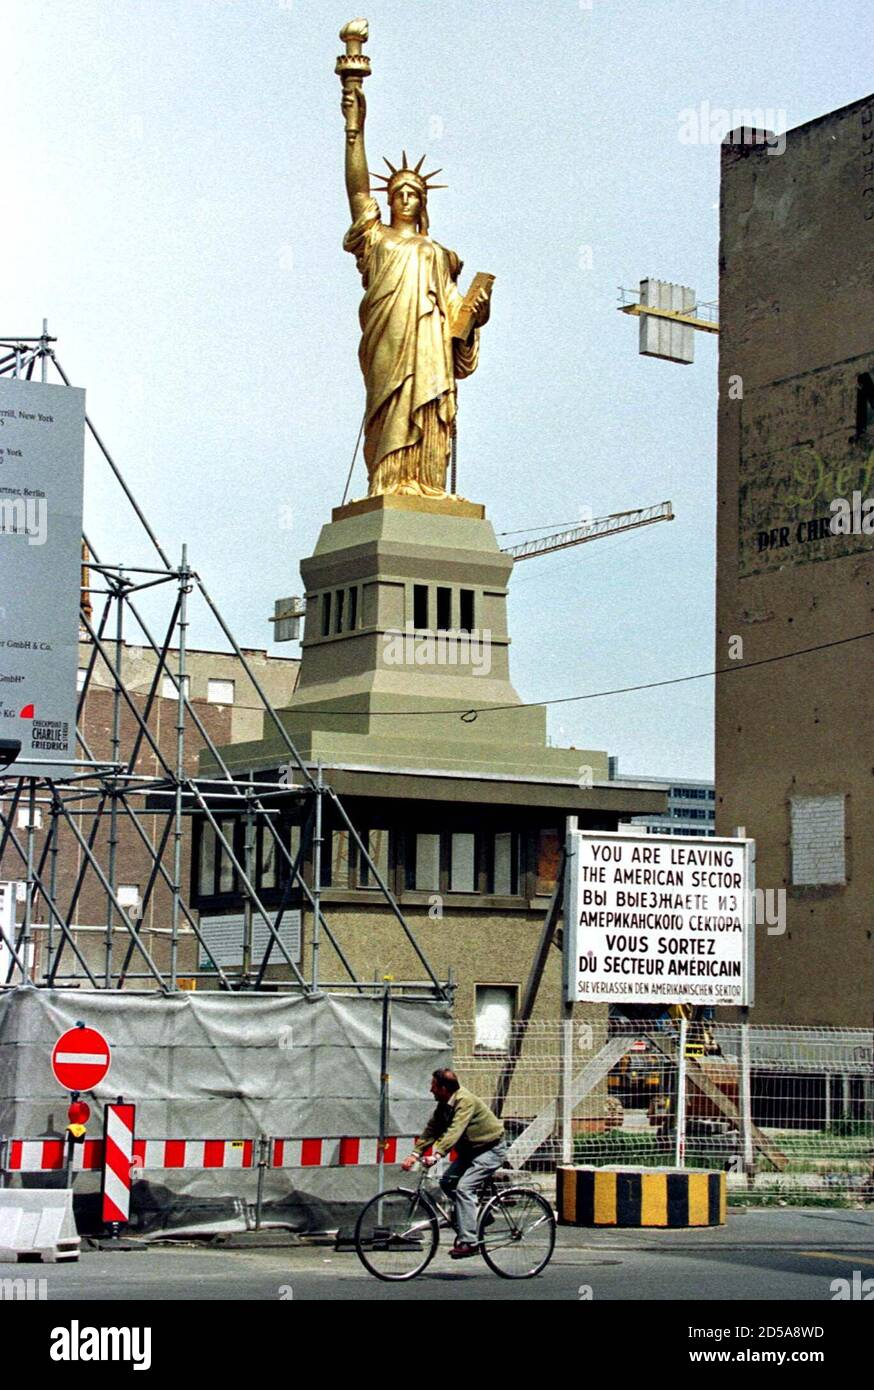 """A cyclist passes a giant copy of the """"Statue of Liberty """", May 29 which has been set up on top of a former east-German border guard watchtower at the former allied Checkpoint Charlie which is now a large construction site where U.S. investors build the American trade center. The sign reads in English, Russian, French and German """" You are leaving the American sector Stock Photo"""